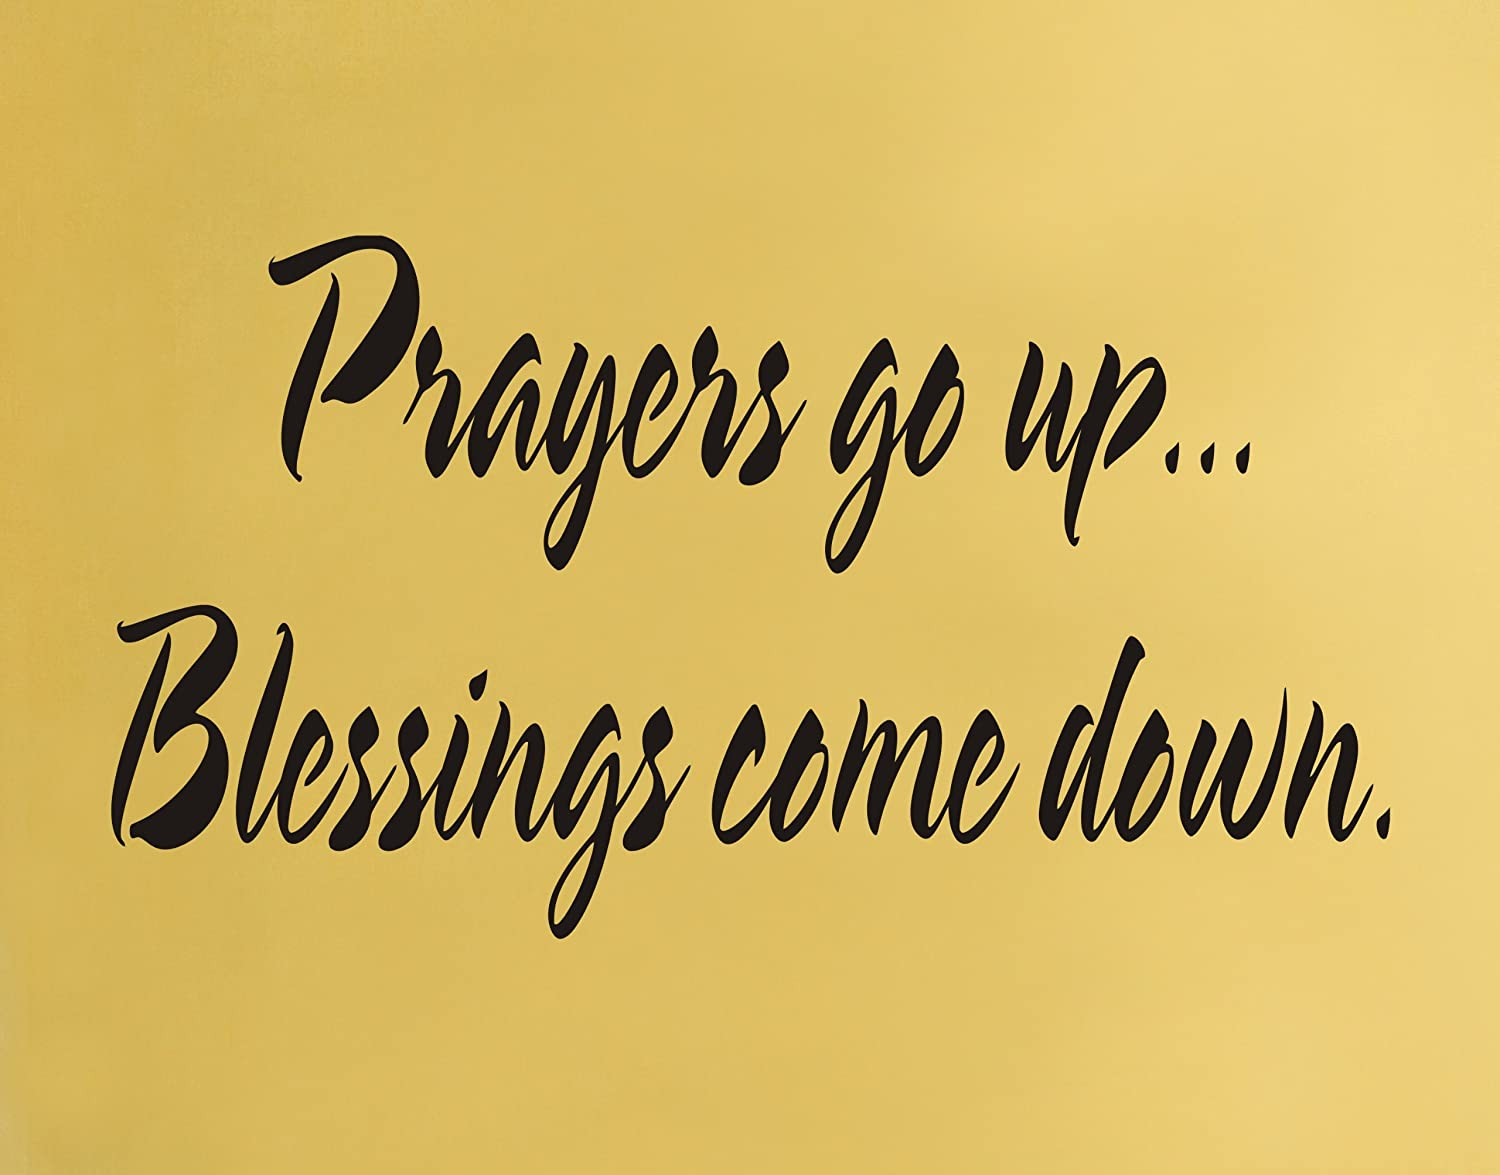 Amazon.com: Prayers go up... Blessings come down religious wall ...